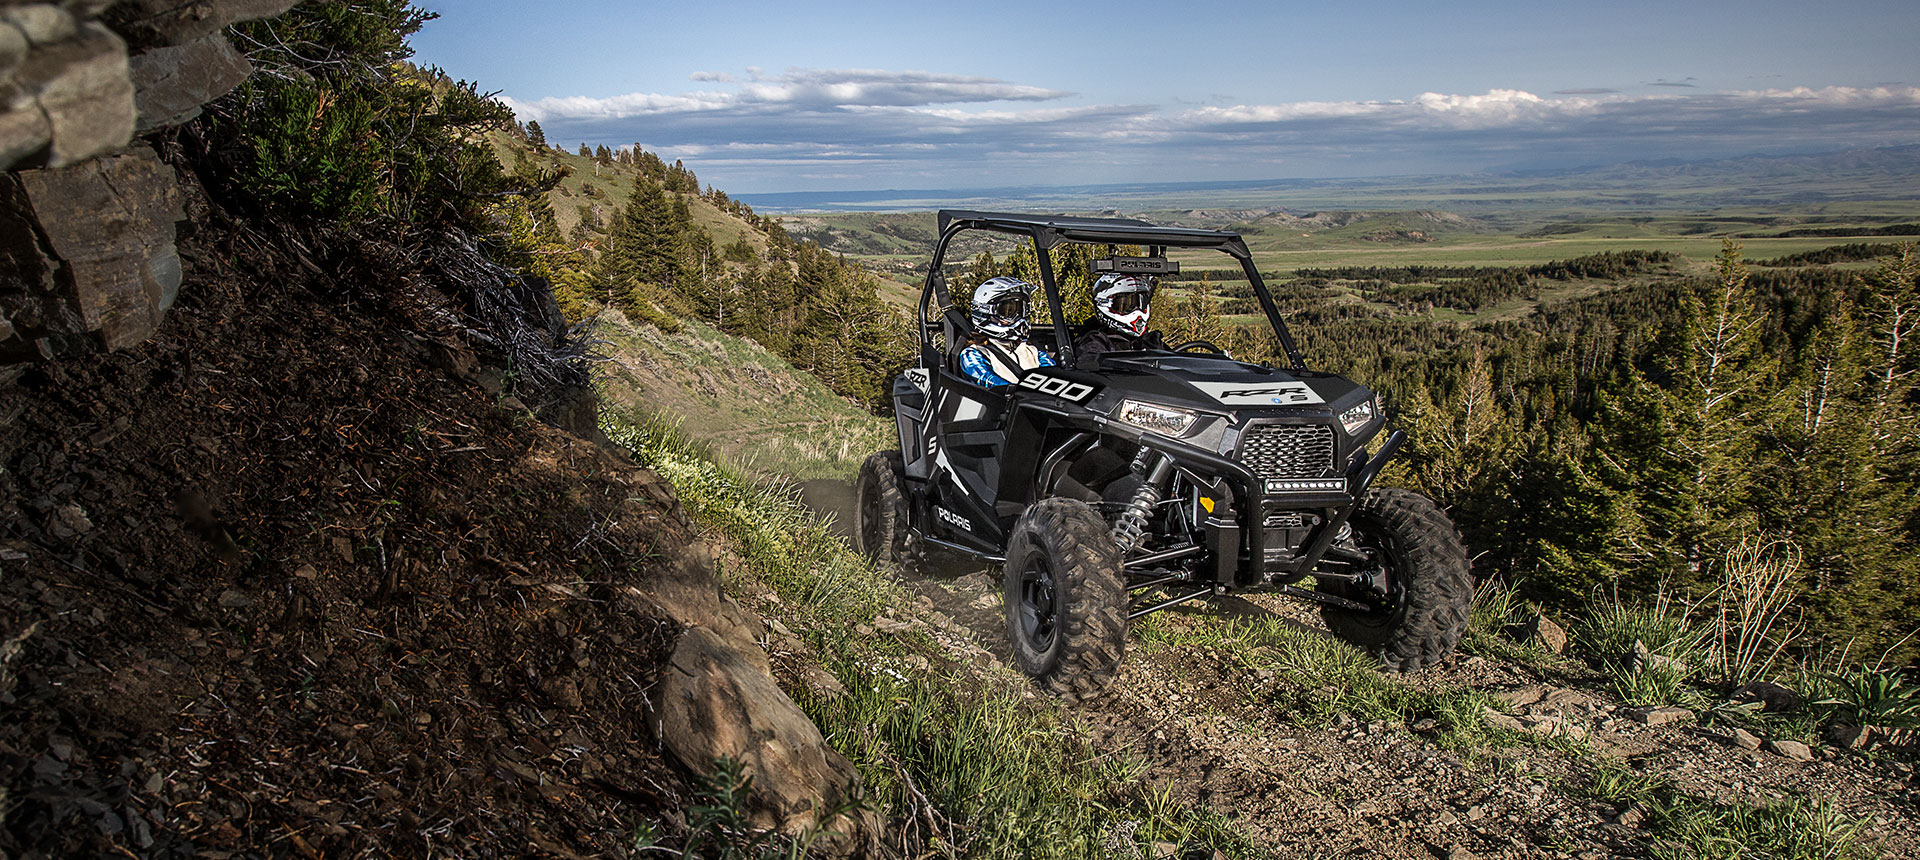 2019 Polaris RZR S 900 in Thornville, Ohio - Photo 4